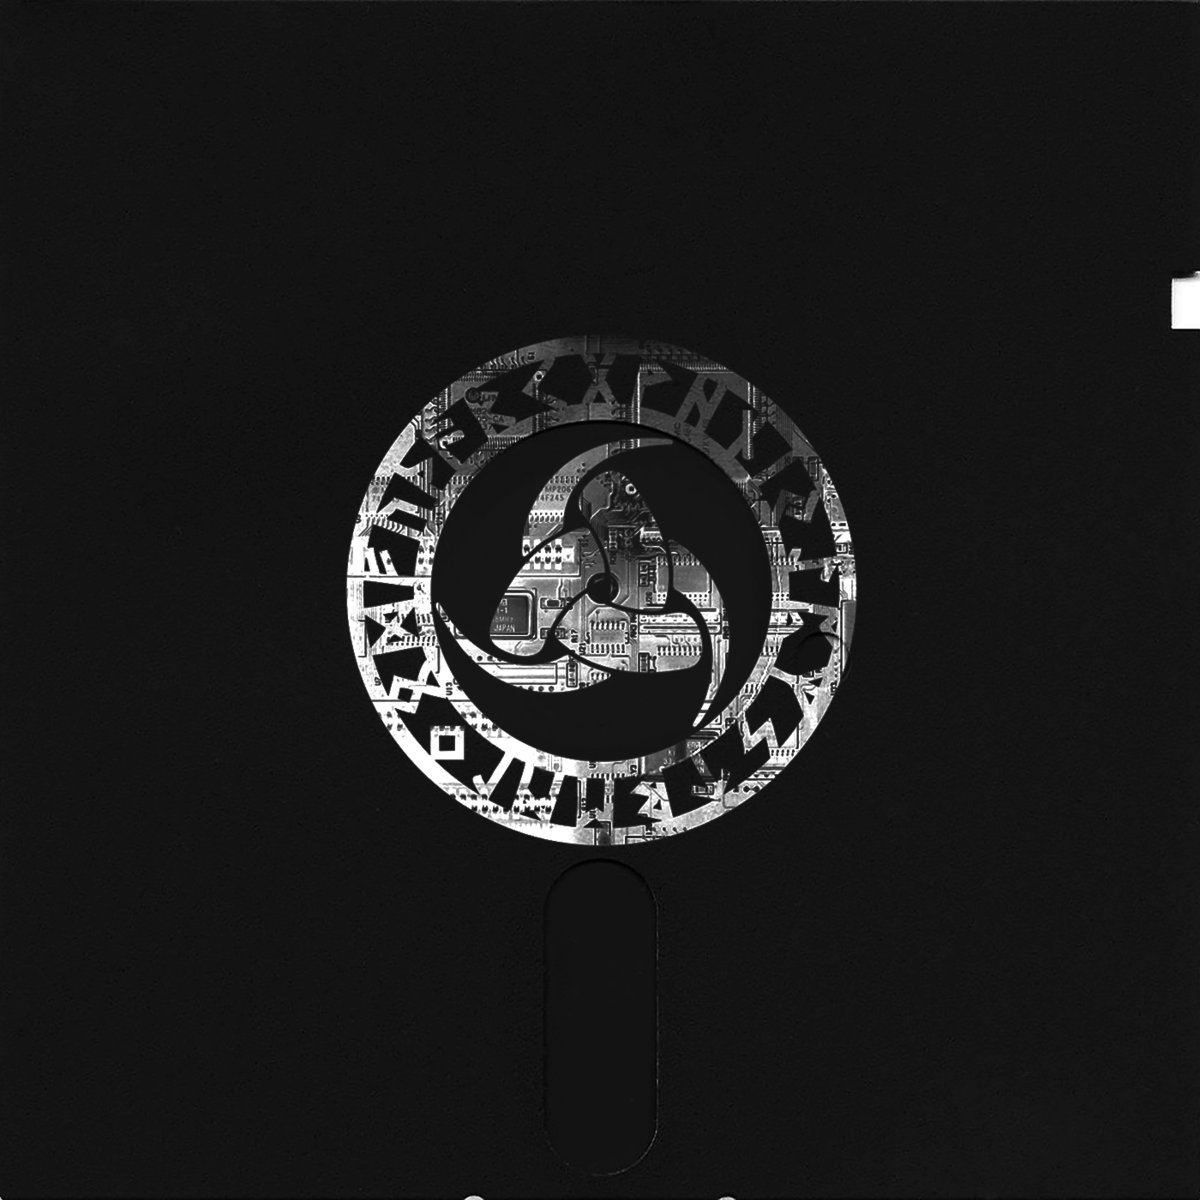 MASTER BOOT RECORDC​:​\​>COPY *​.​* A: /V-MASTER BOOT RECORD-Victor Love-Art